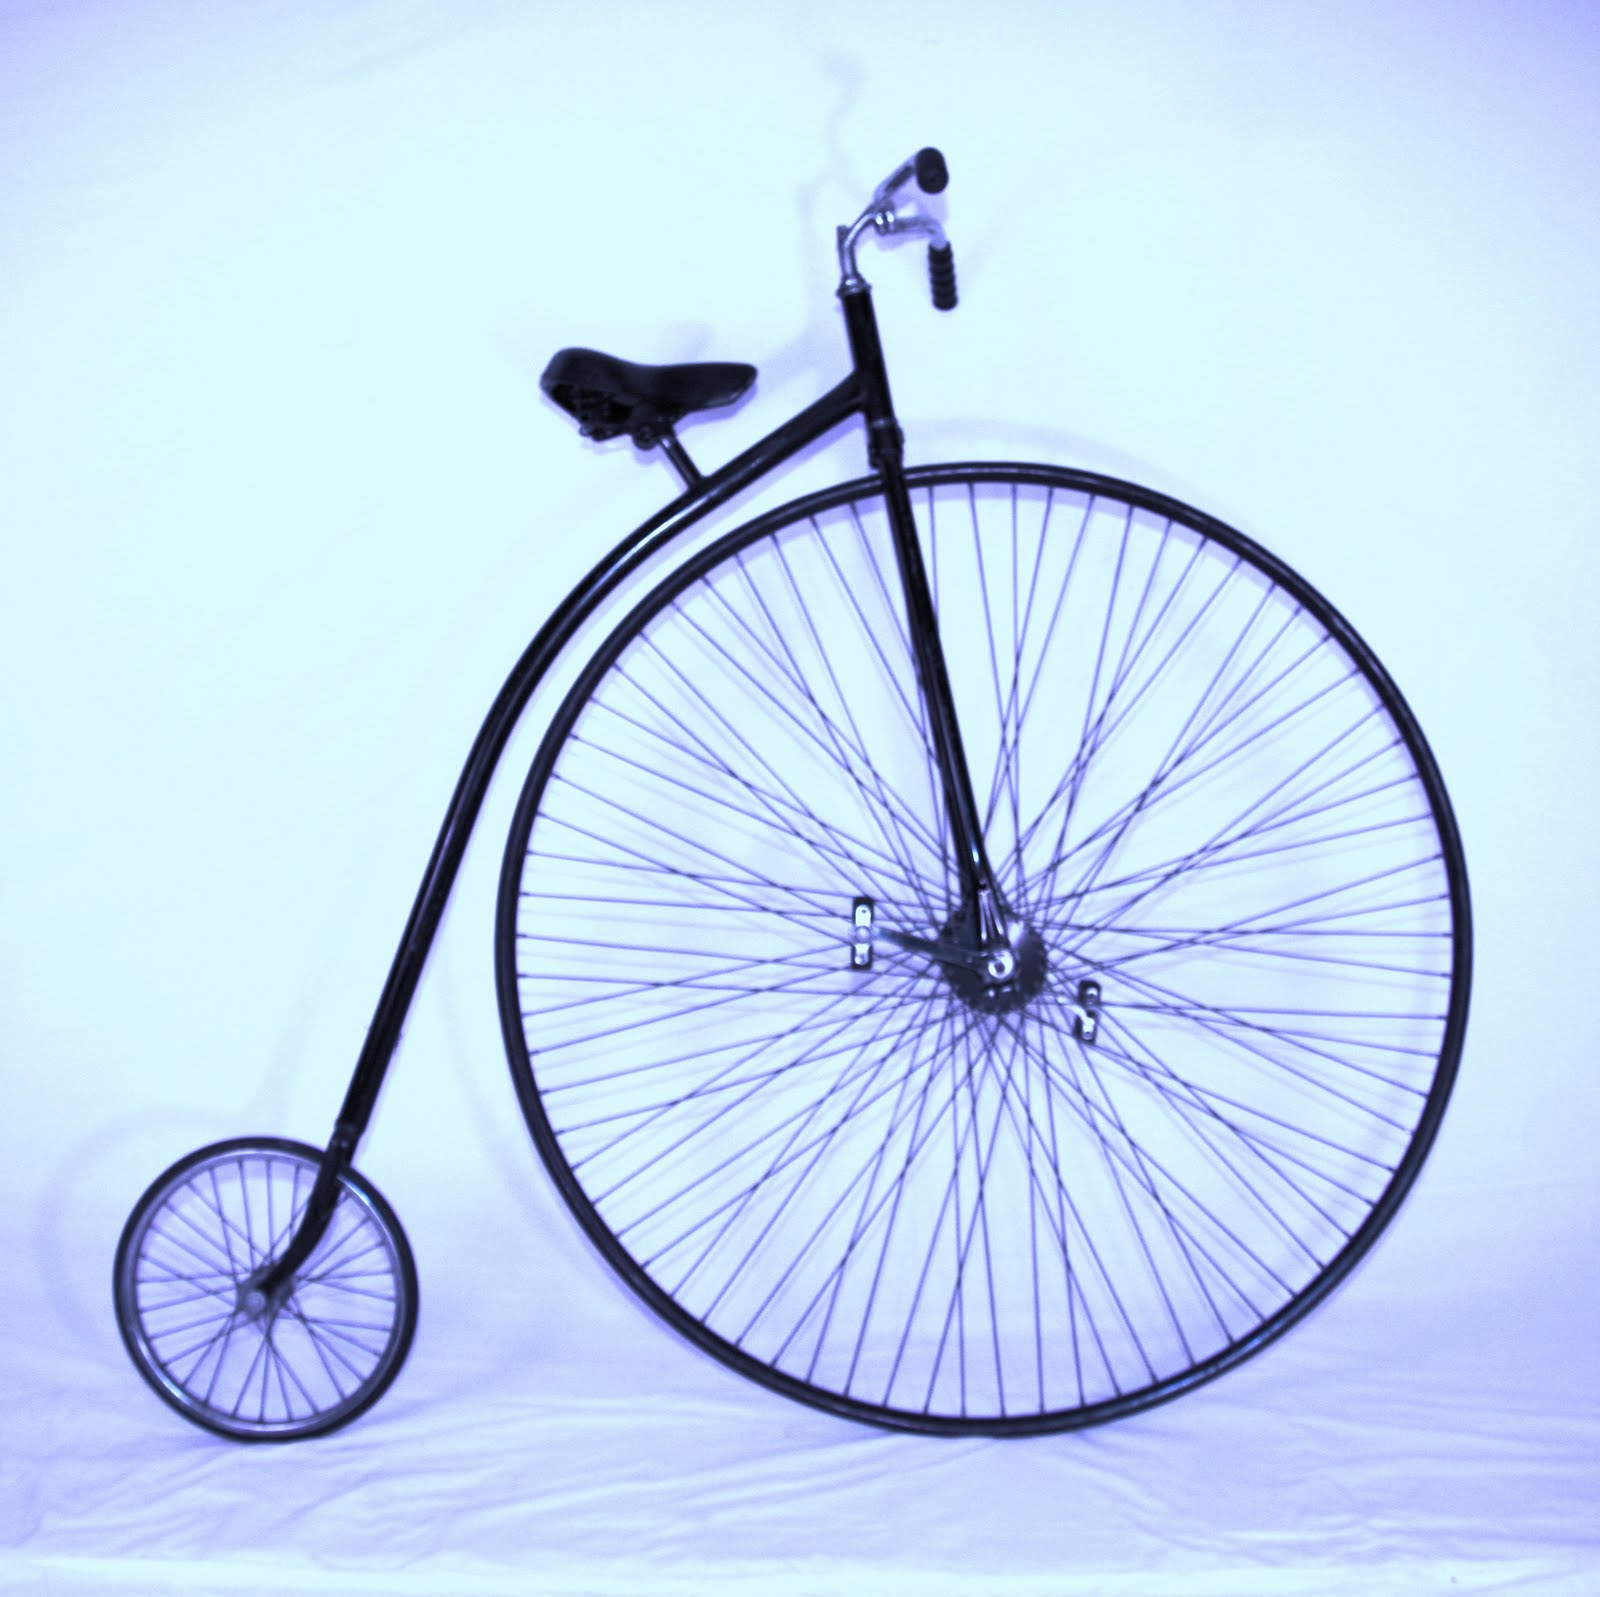 Antiques, Vintage and More: 1870's Ariel Bicycle